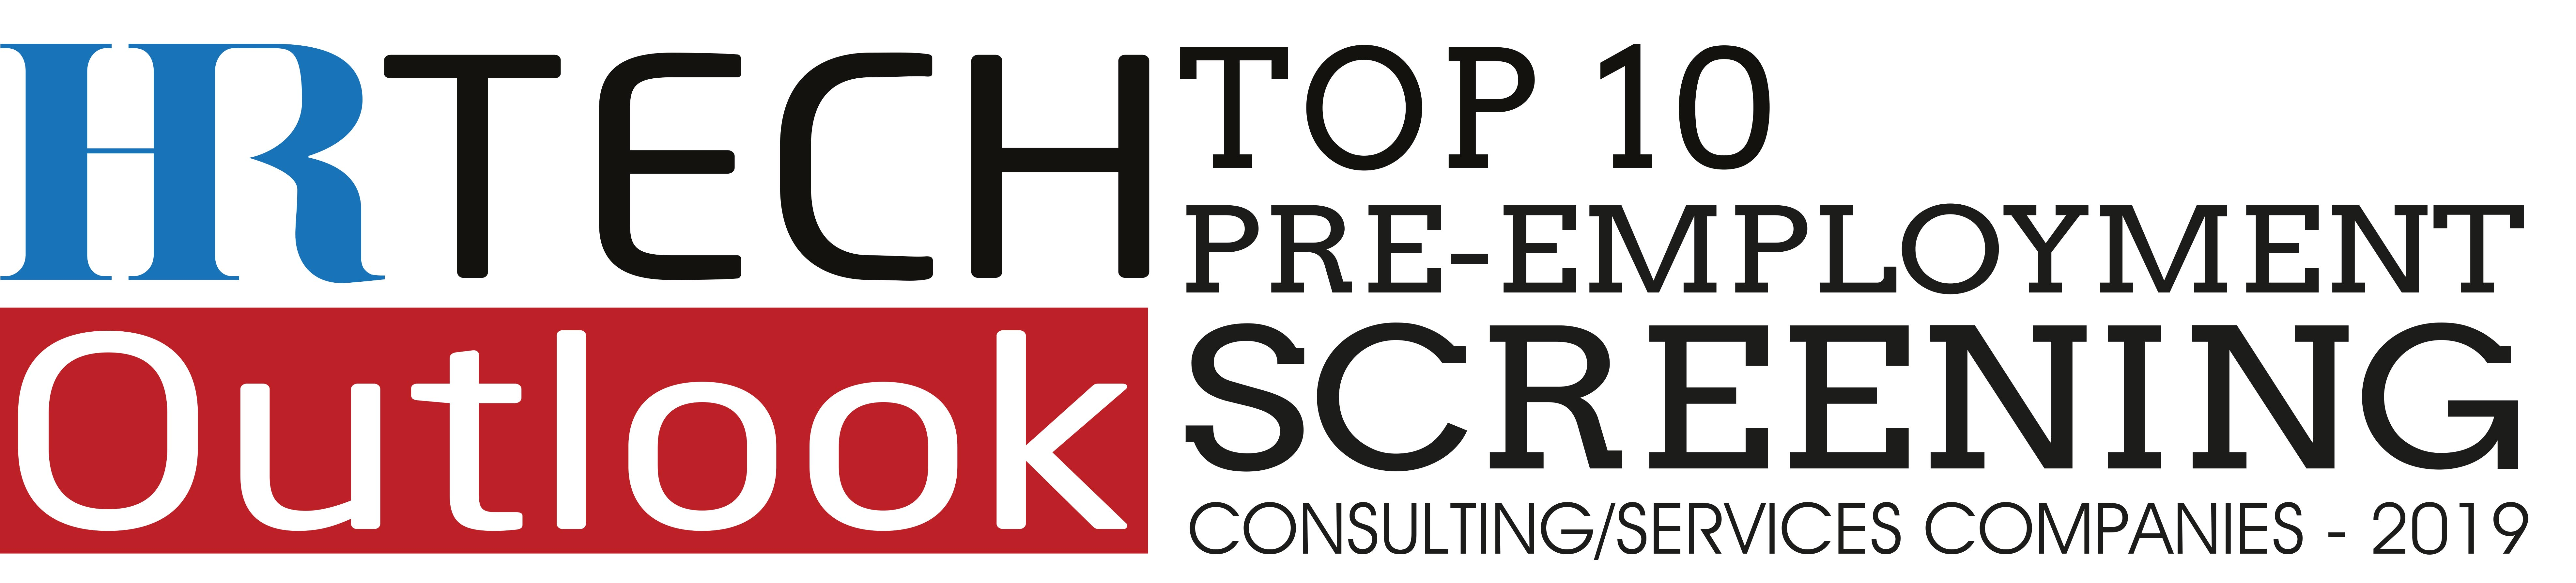 Top Ten Pre-Employment Screening Companies 2019